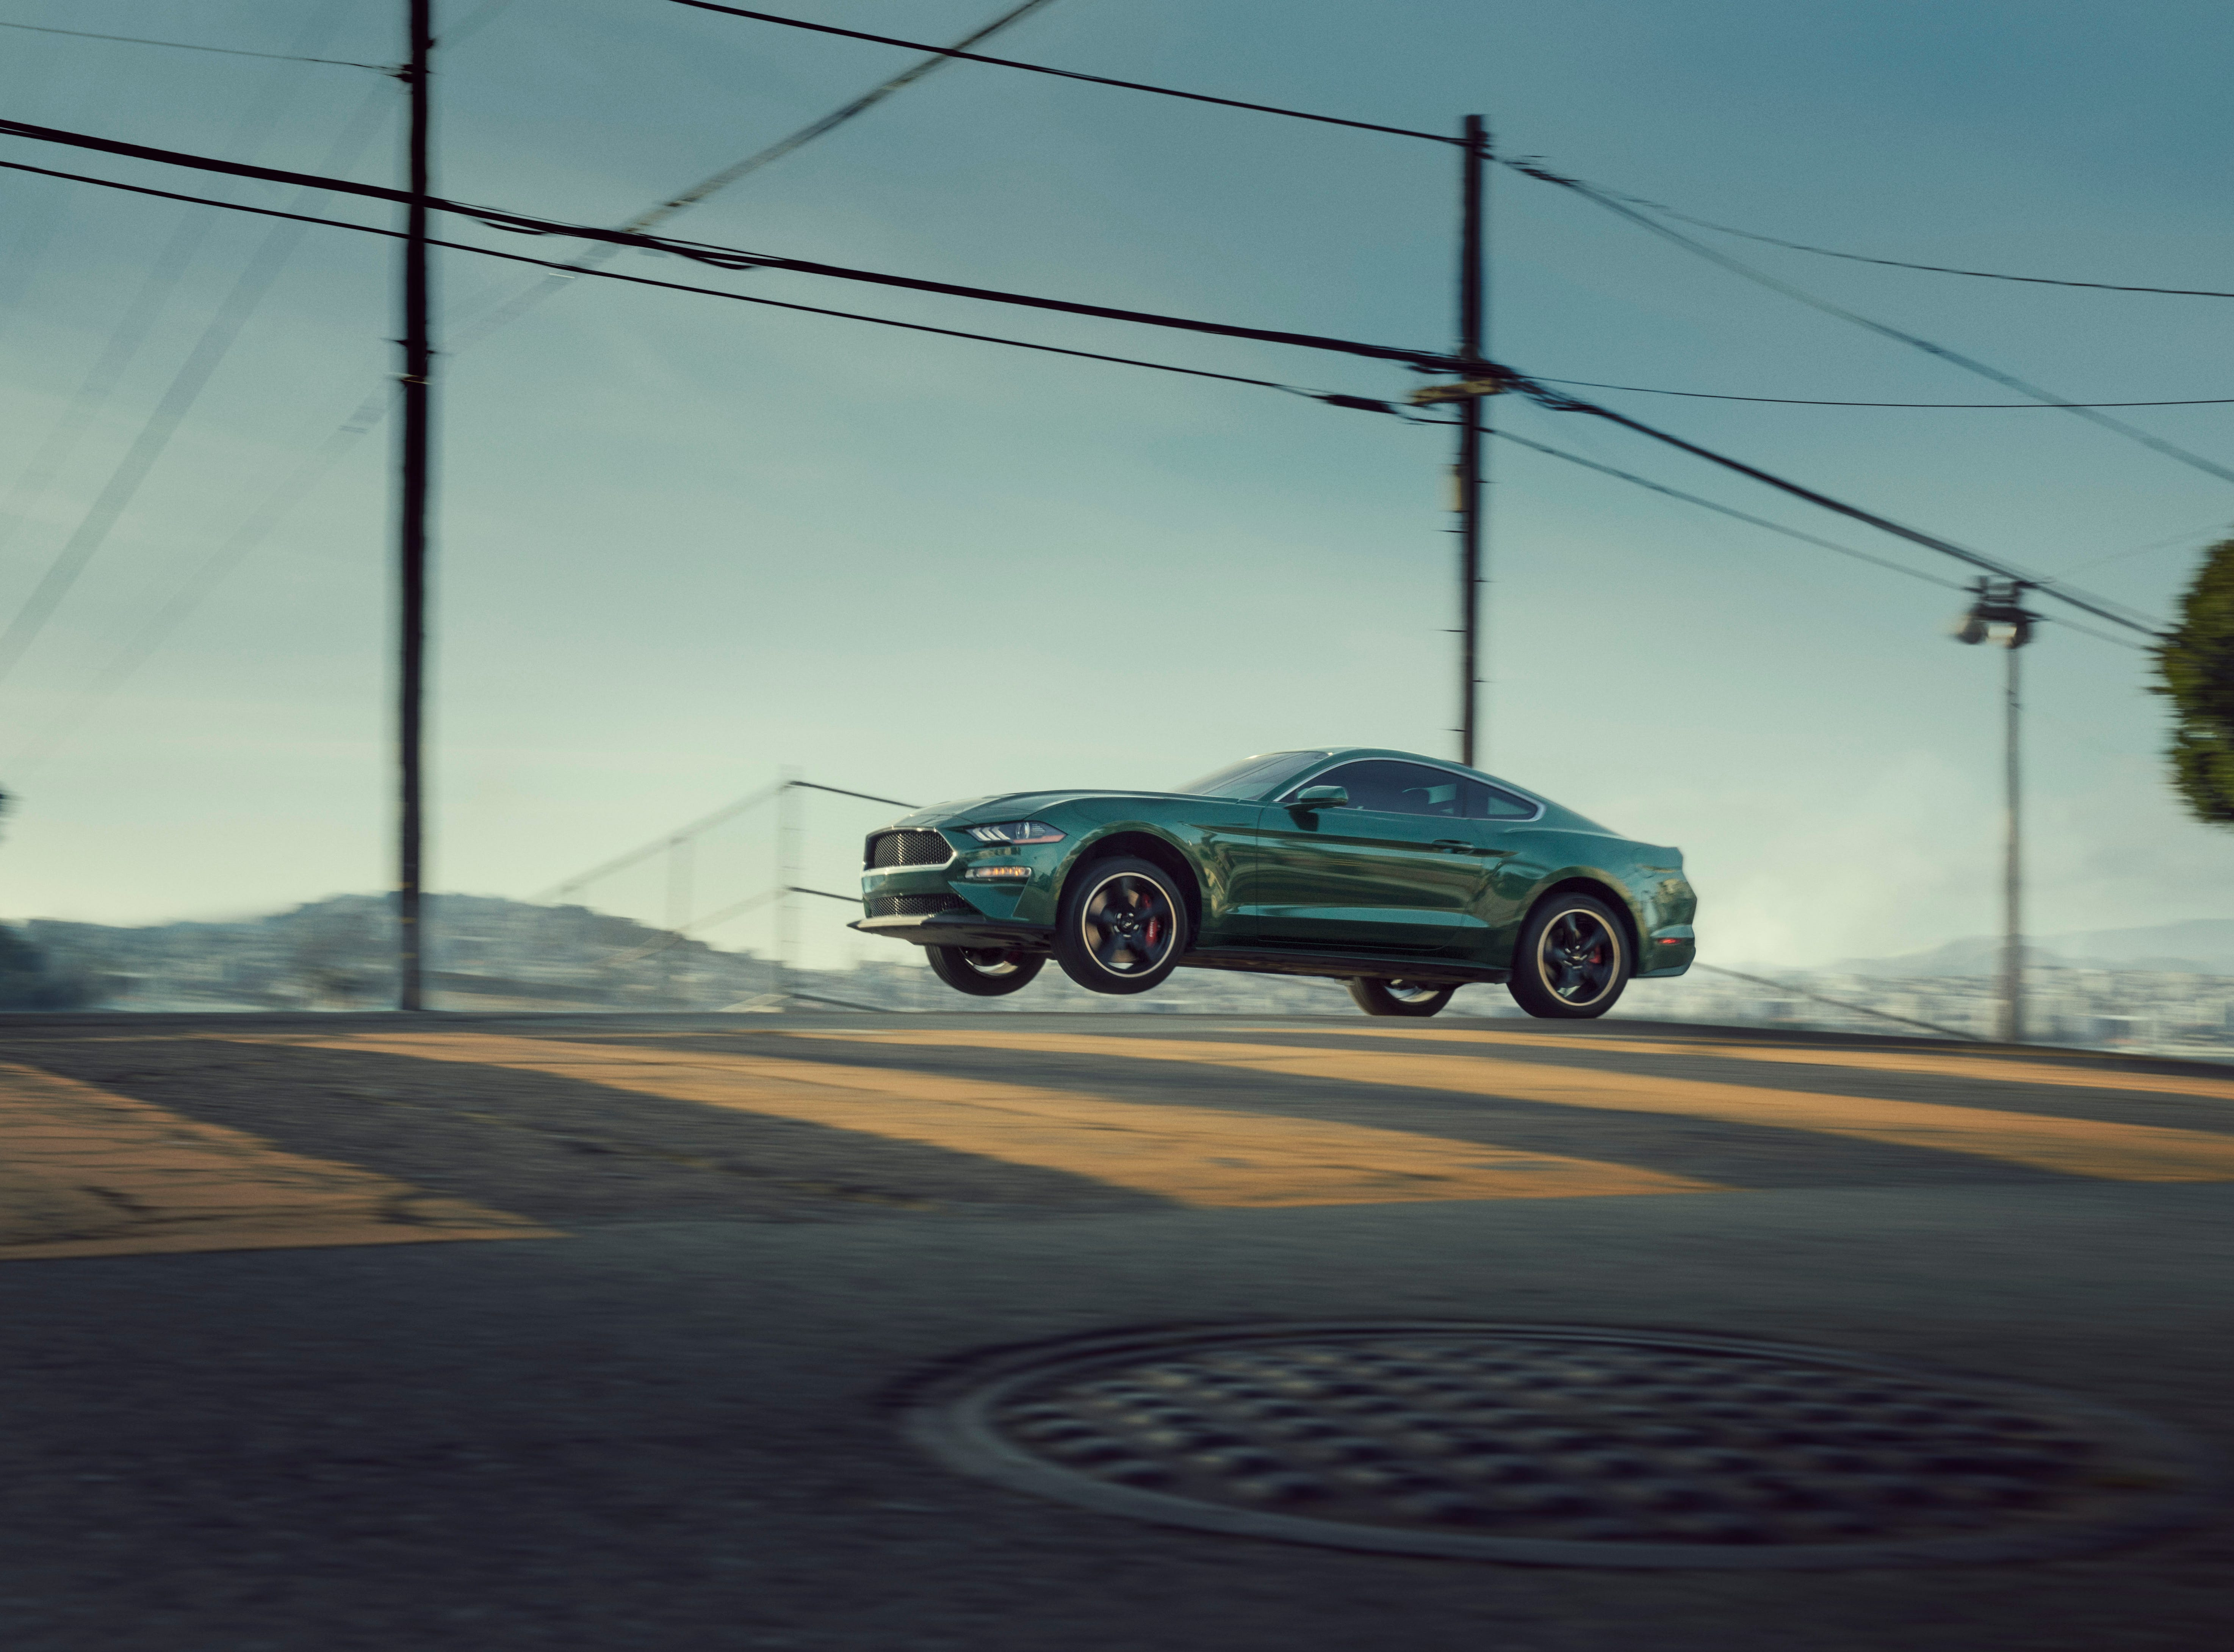 The 2019 Ford Mustang Bullitt can get airborne just like the '68 original.